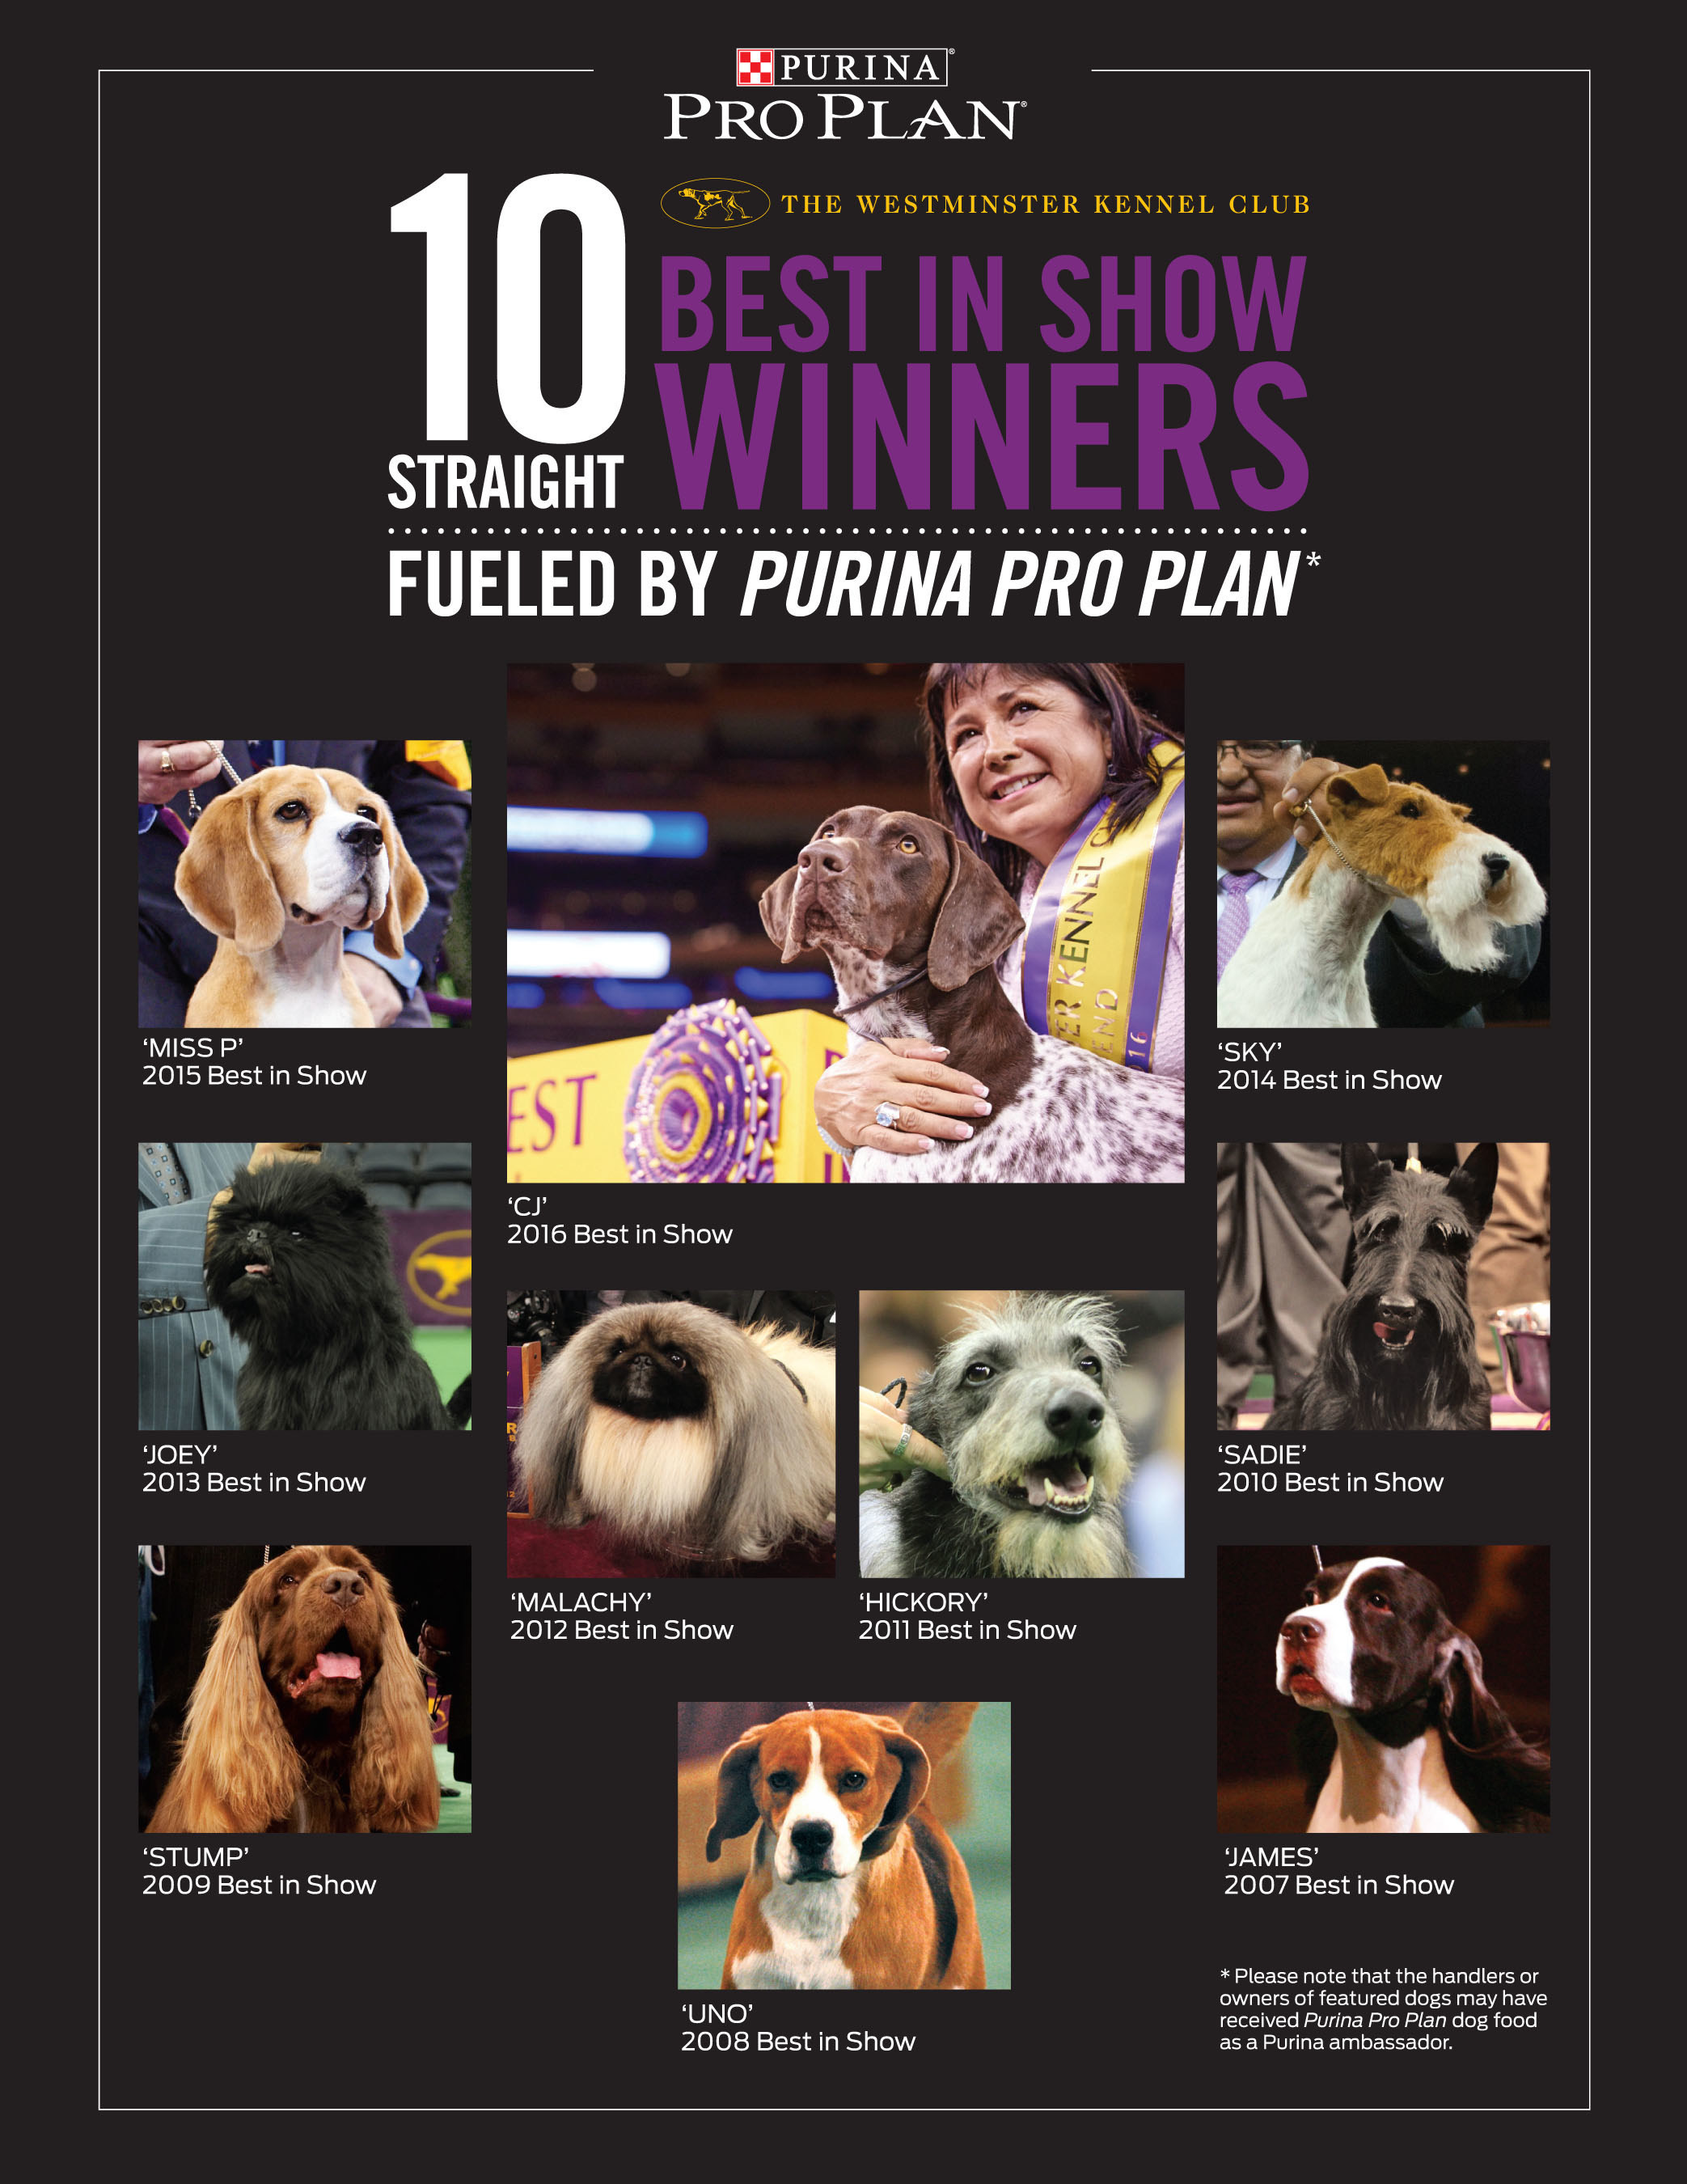 The past 10 Best in Show winners of the Westminster Kennel Club Dog Show has been fueled by Purina Pro Plan dog food.